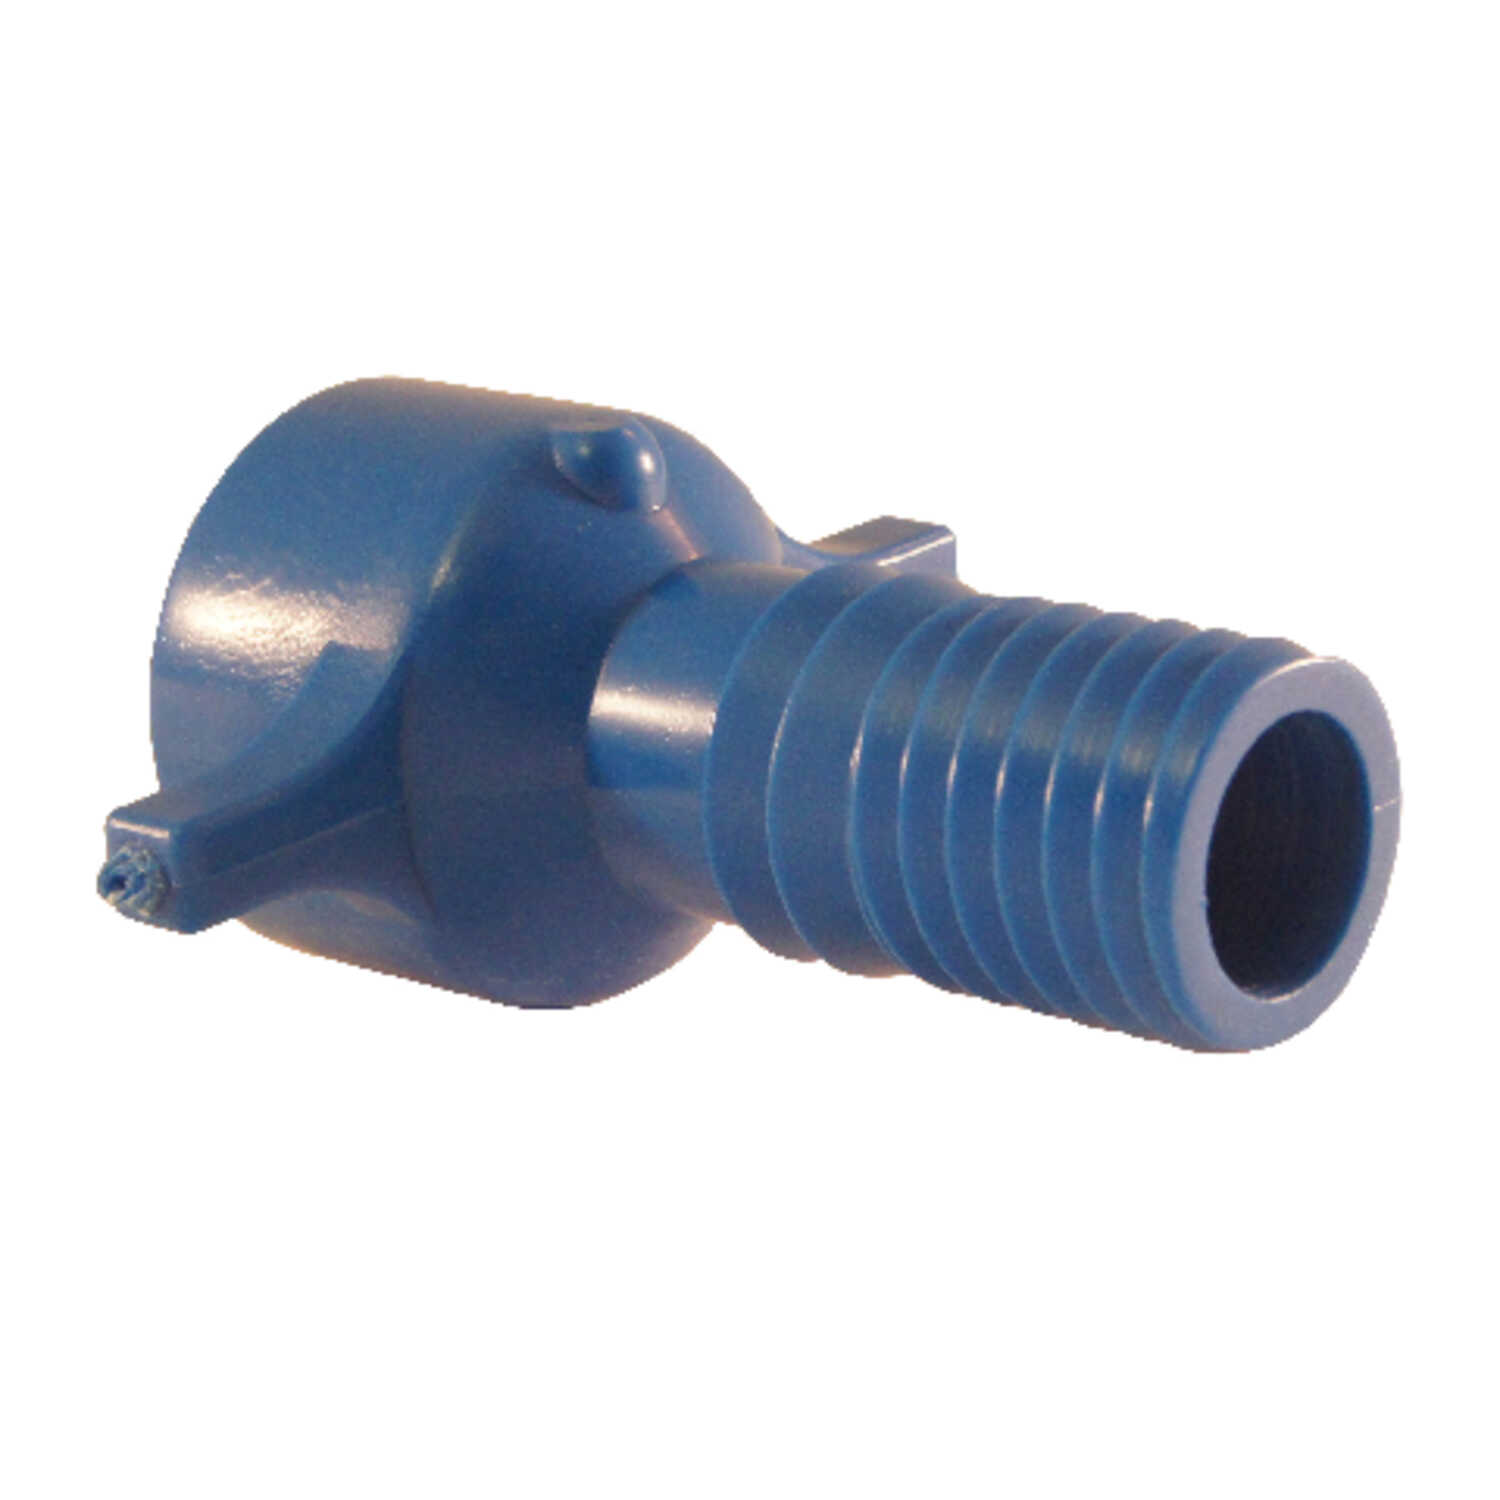 Blue Twisters  3/4 in. Insert   x 3/4 in. Dia. FPT  Polypropylene  Female Adapter